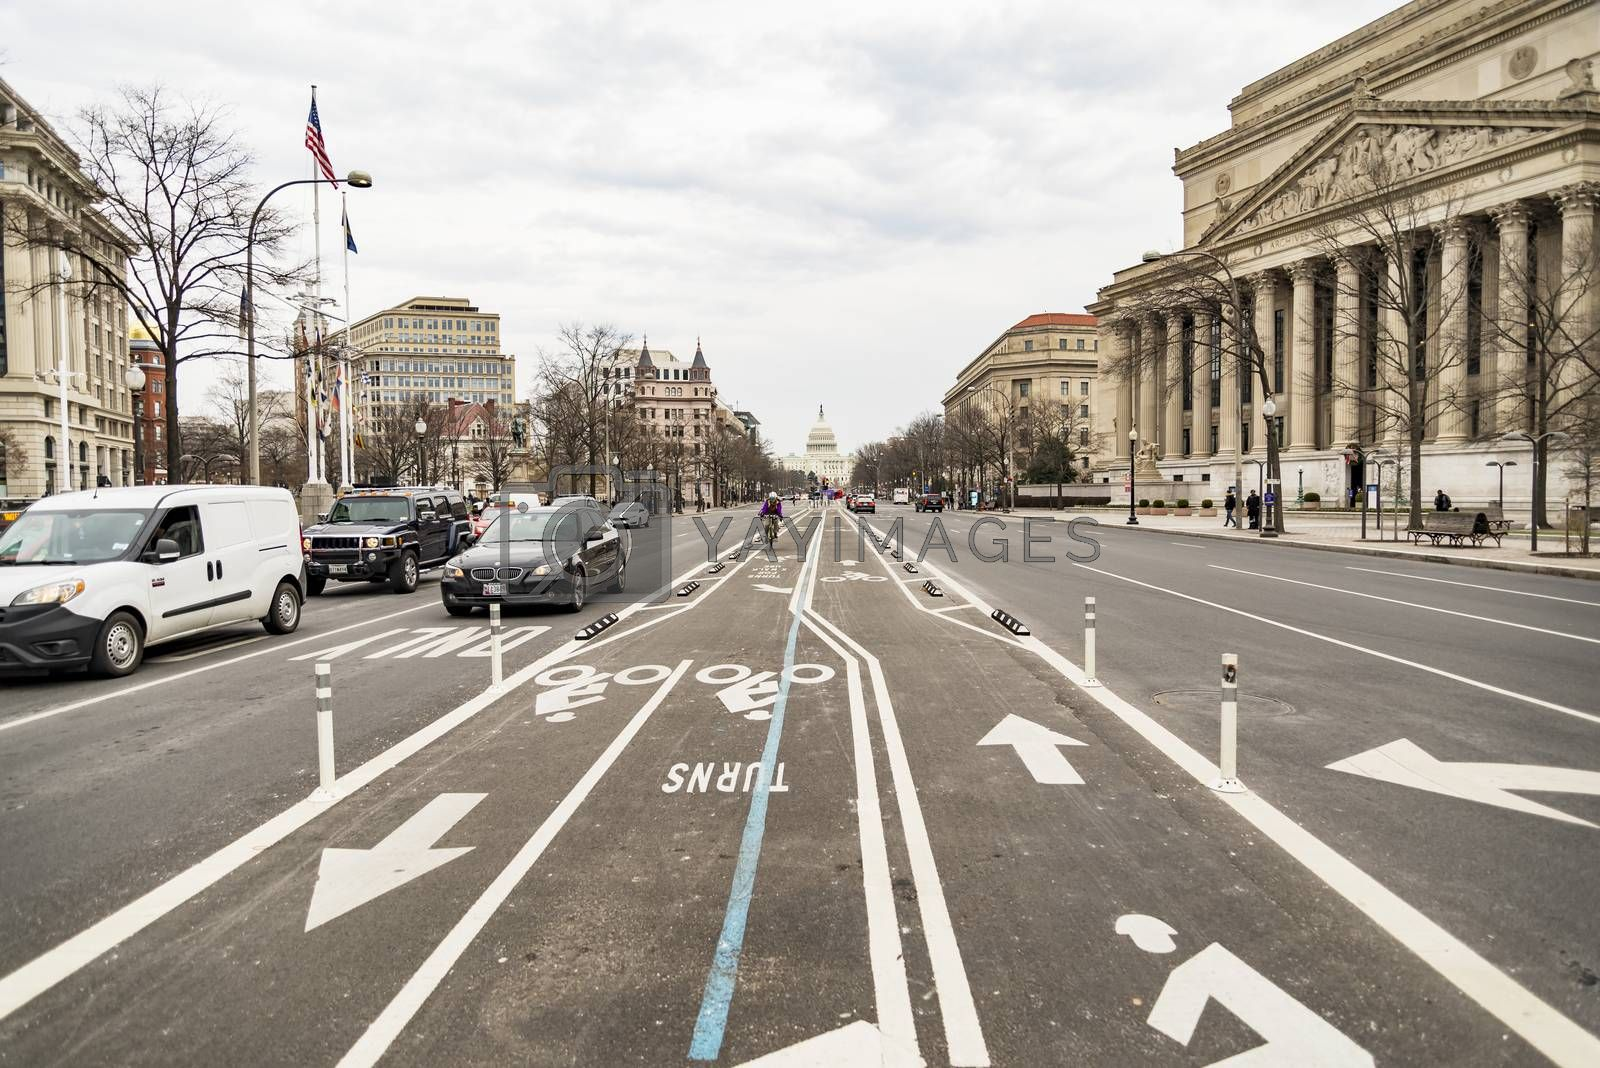 Washington D.C., USA - DECEMBER 20: Constitution Avenue Street leading to the Capitol Street, on December 20, 2017 in Washington DC